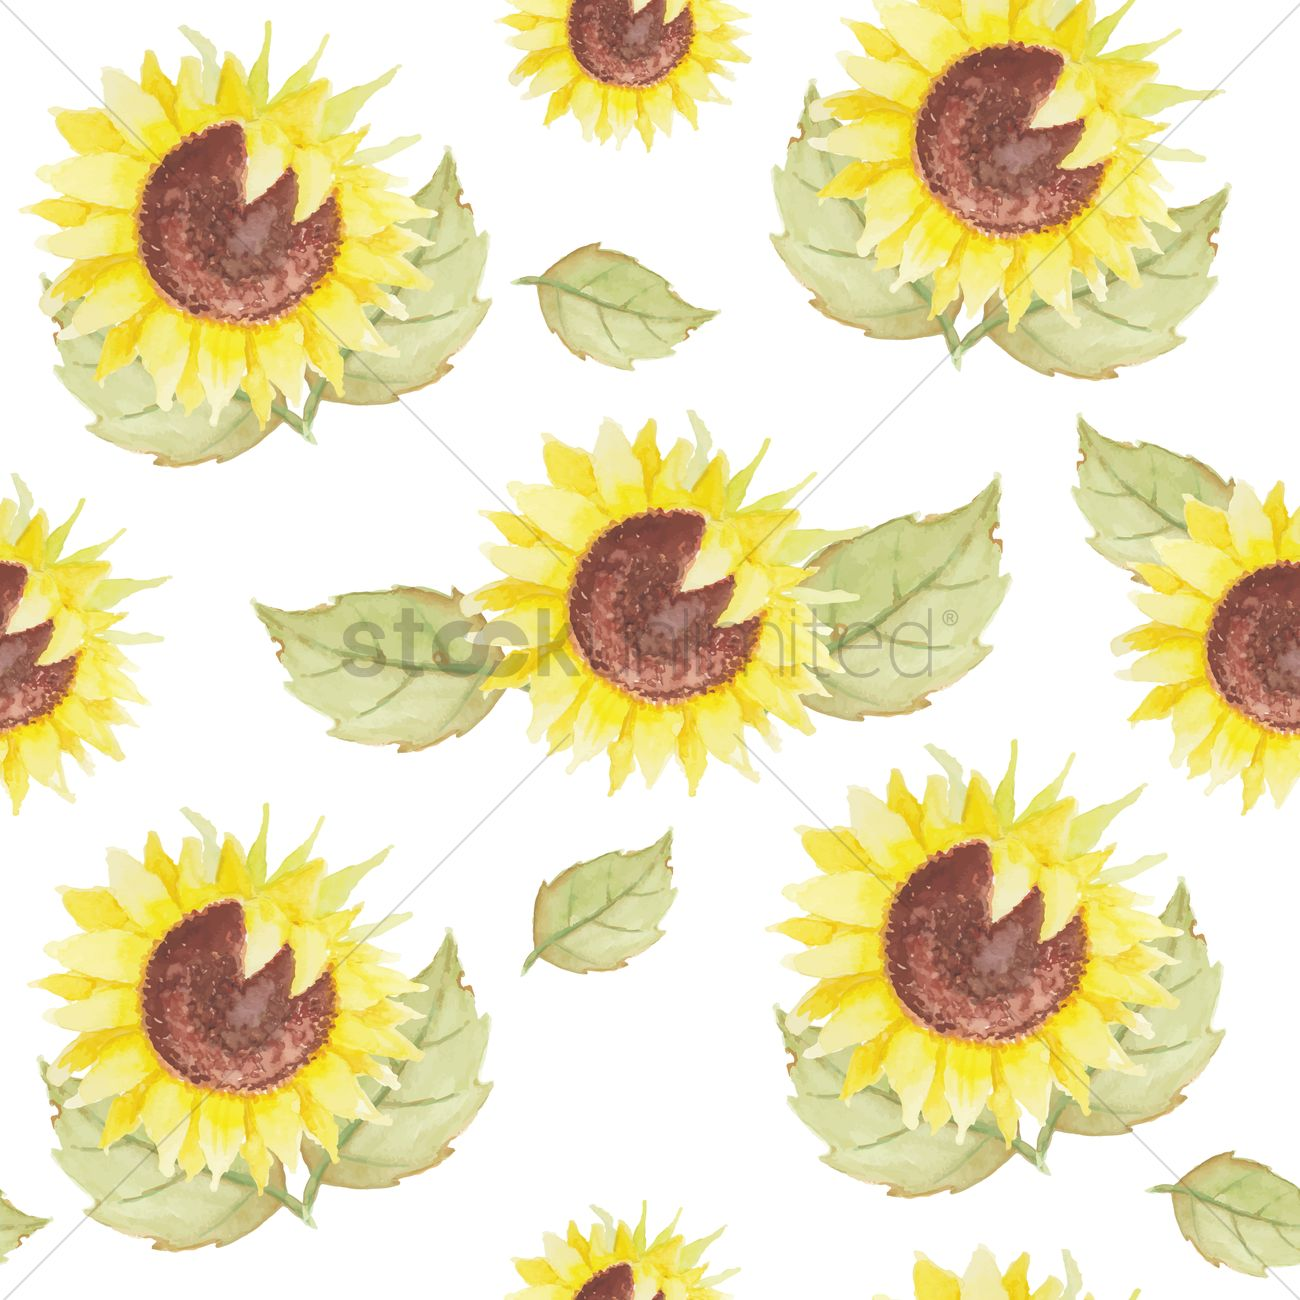 sunflowers background vector image 1807431 stockunlimited